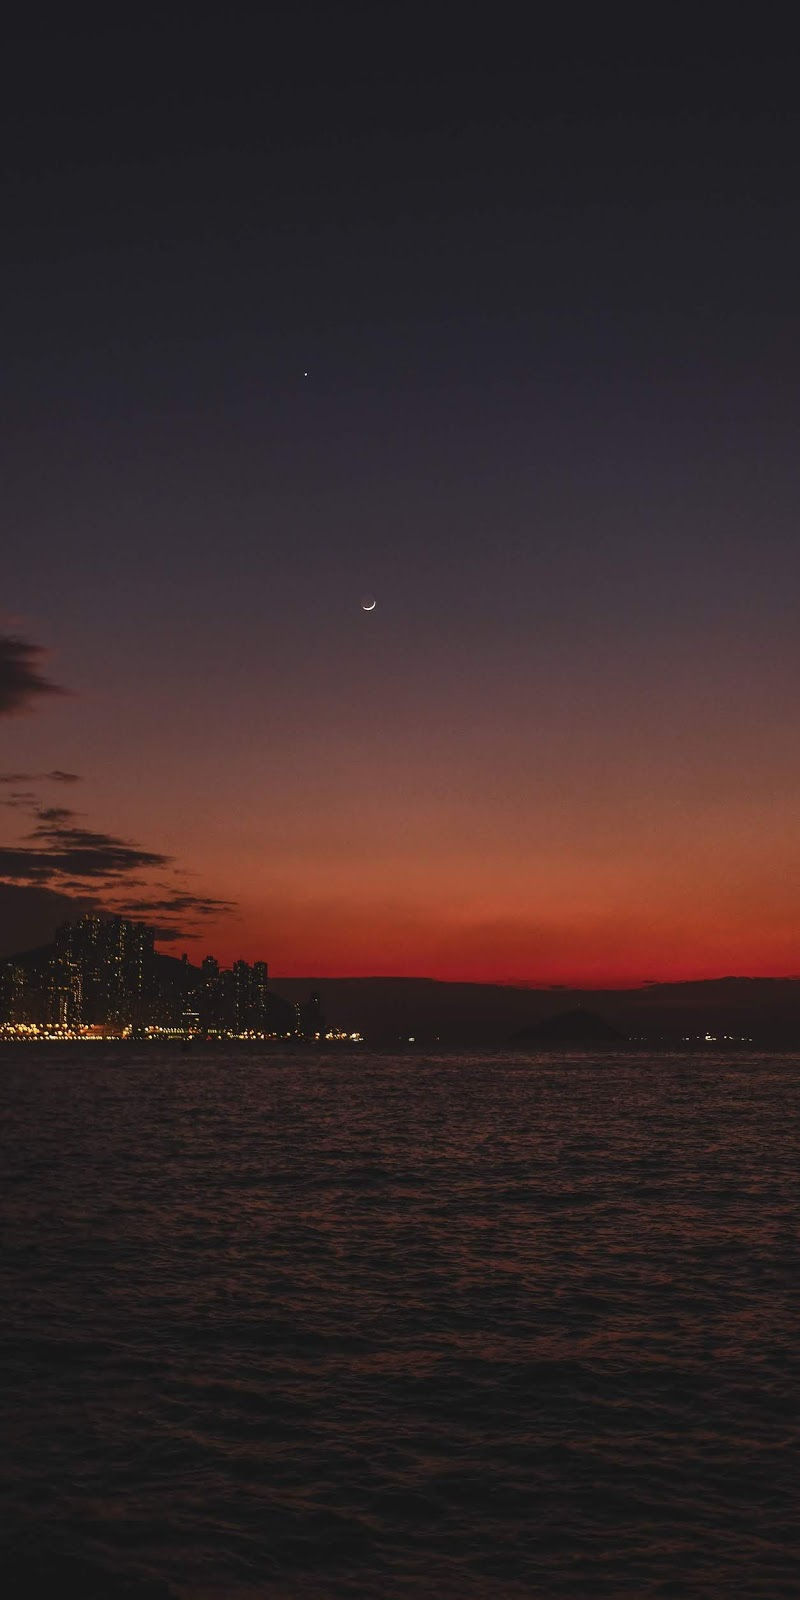 Crescent moon in the sunset